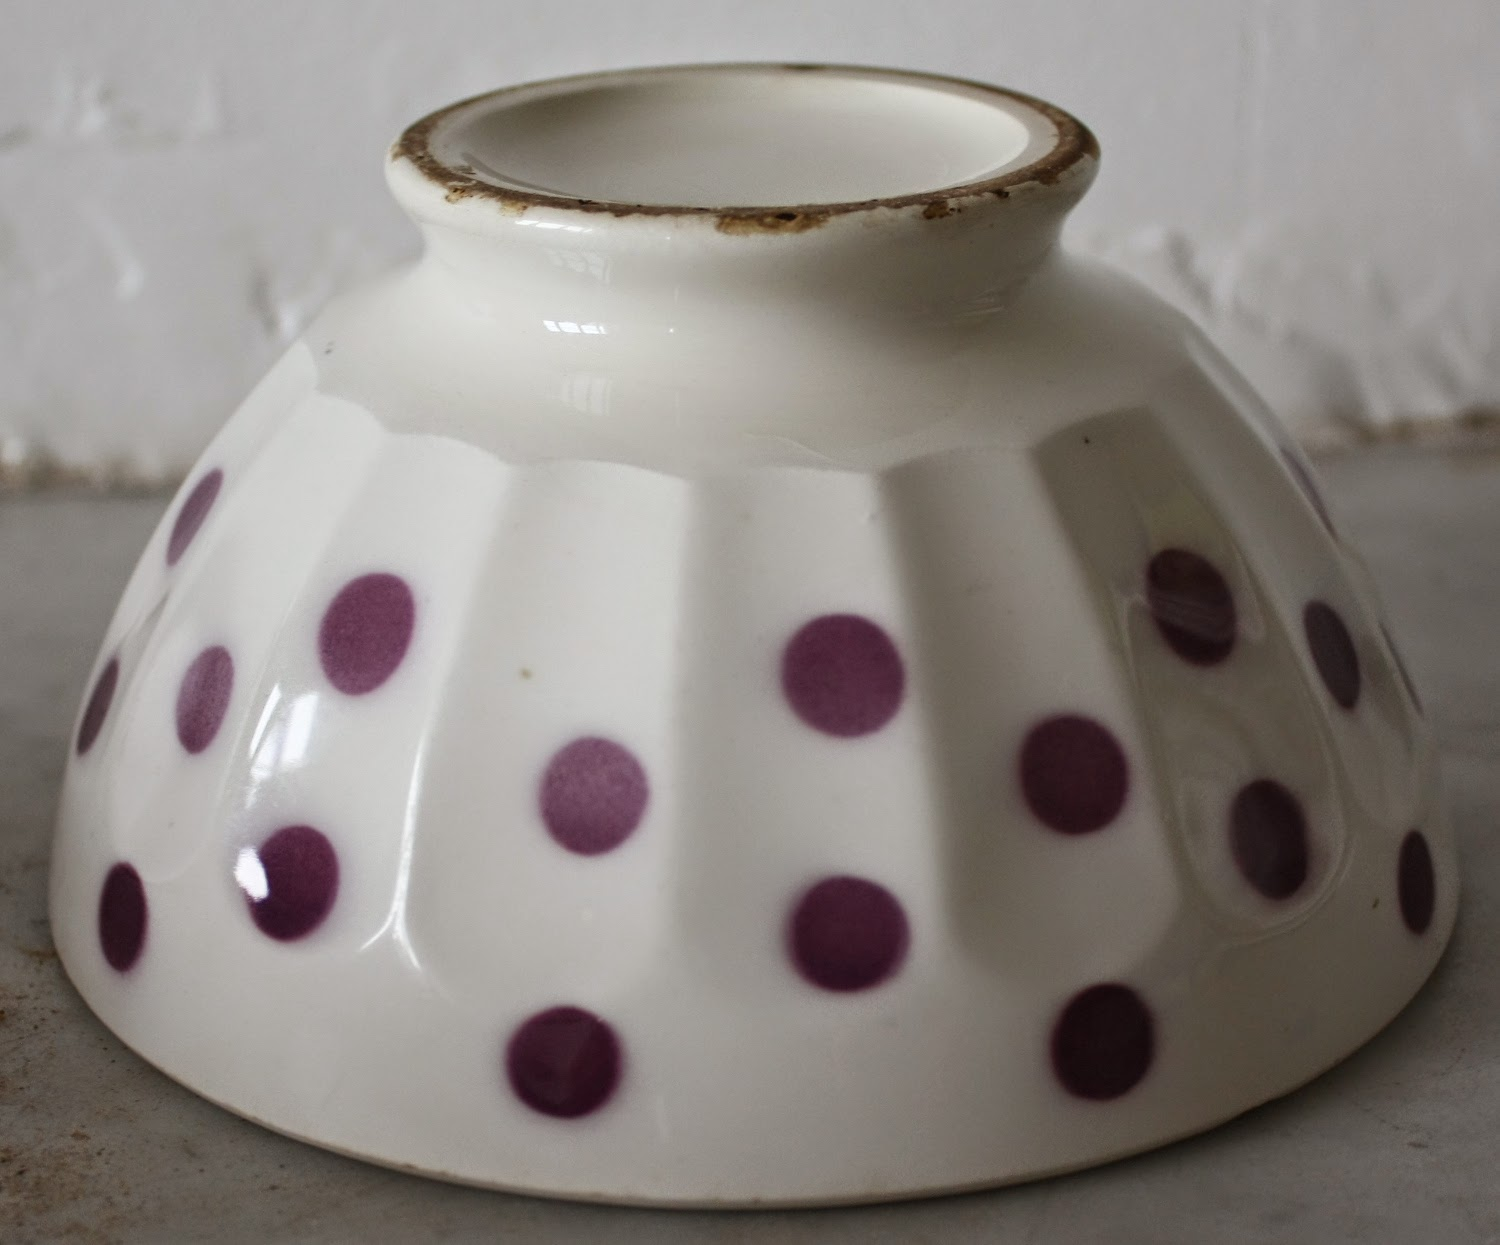 Garage Sale Dots Yard Sale Finds Sold On Ebay French Cafe Au Lait Bowl Coffee